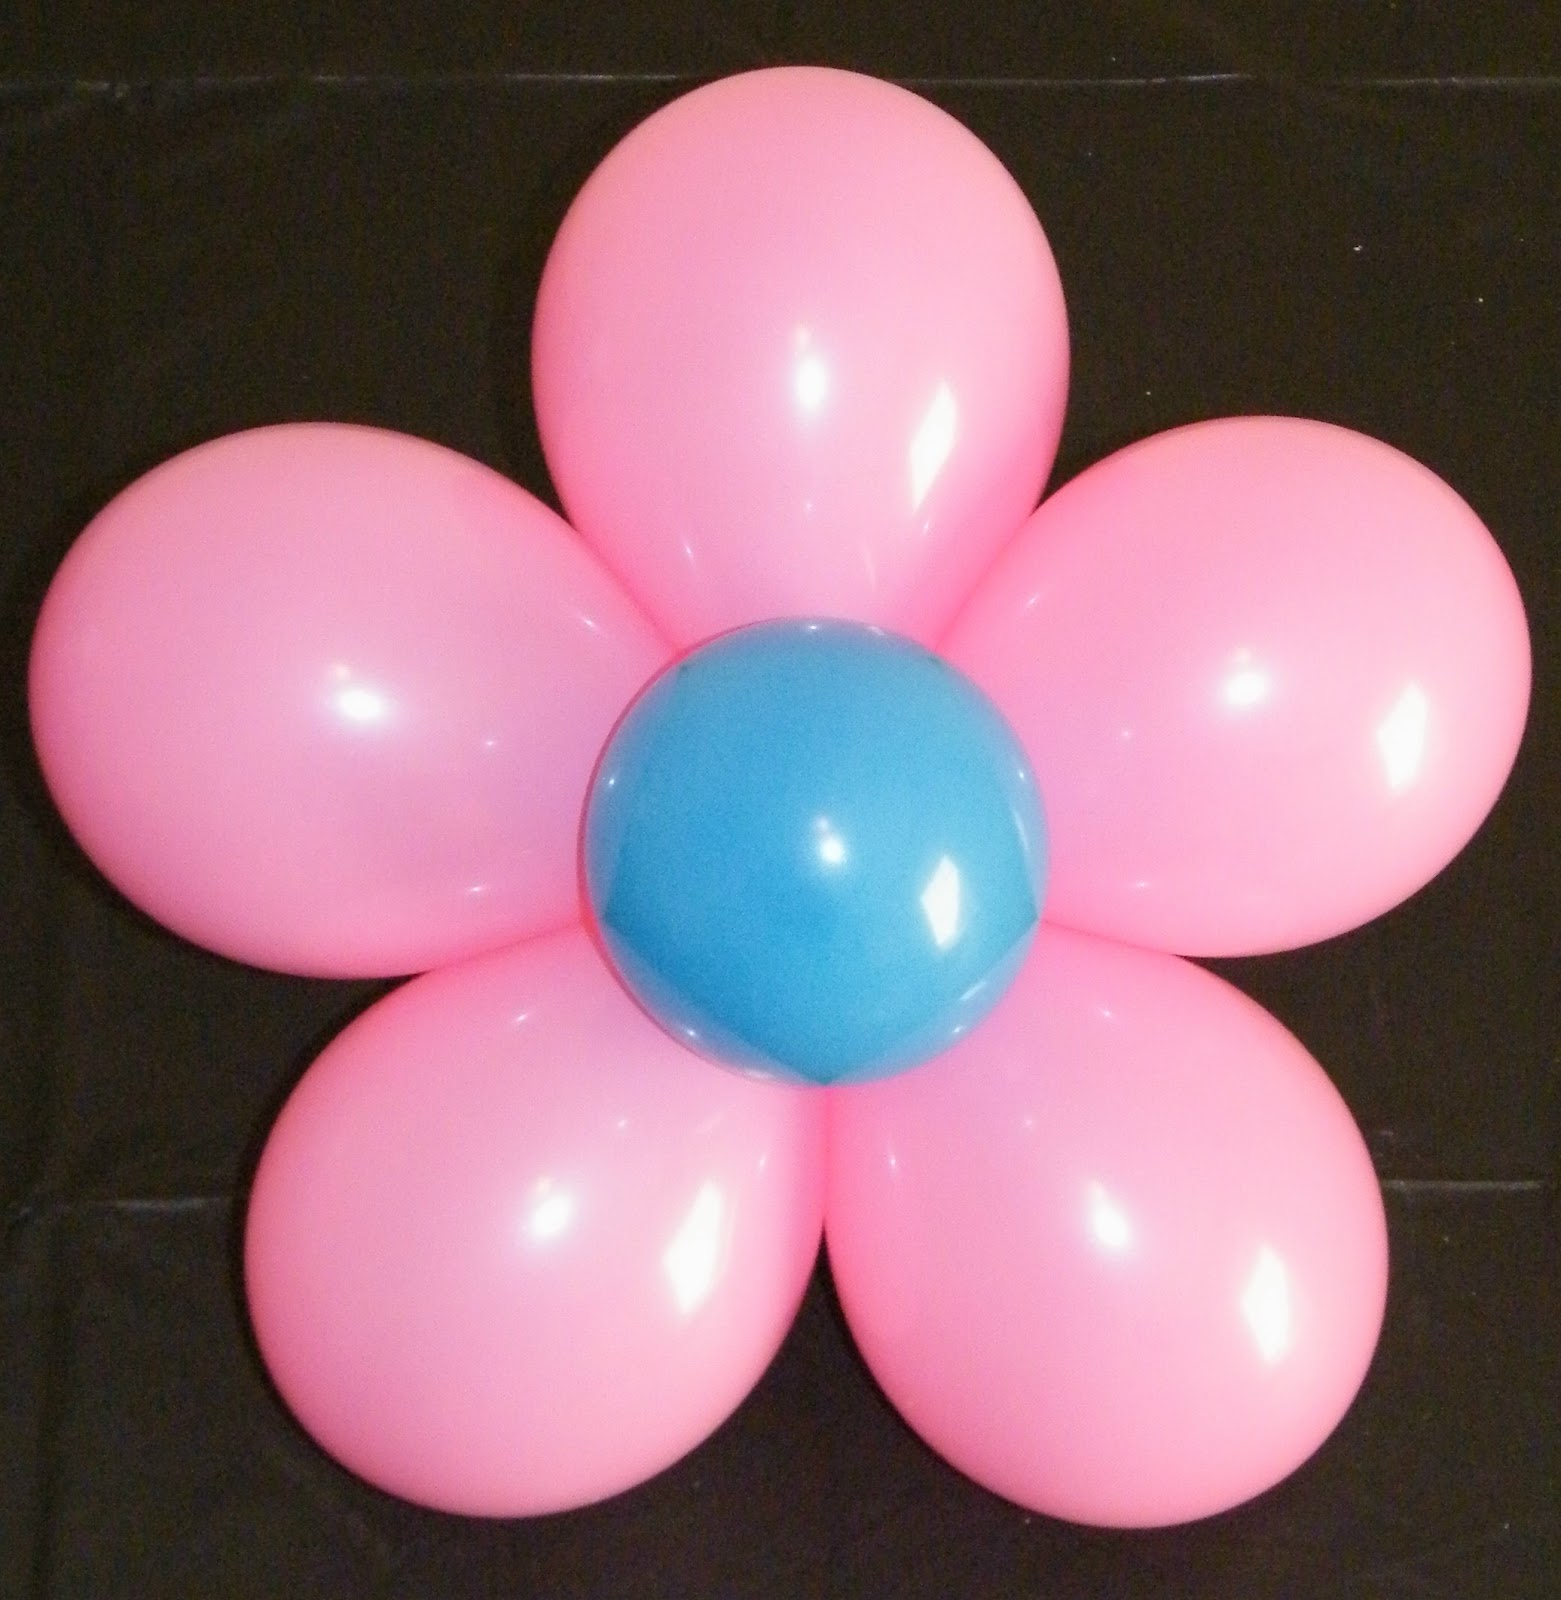 Make your own balloon decorations how to make a balloon flower make your own balloon decorations mightylinksfo